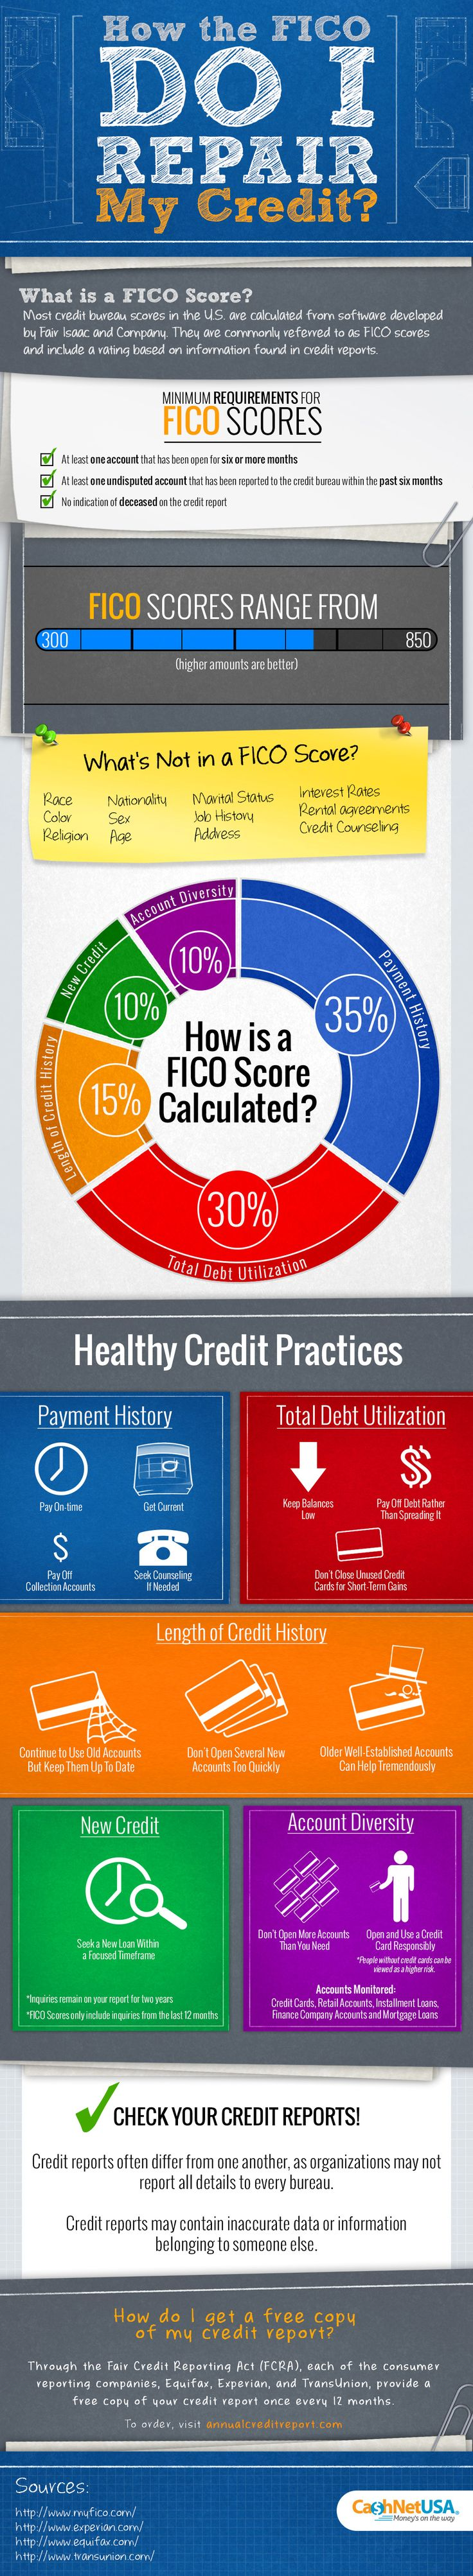 How the FICO Do I Repair My Credit? Brought to you by cashnetusa.com http://www.cashnetusa.com/blog/how-the-fico-do-i-repair-my-credit-score/